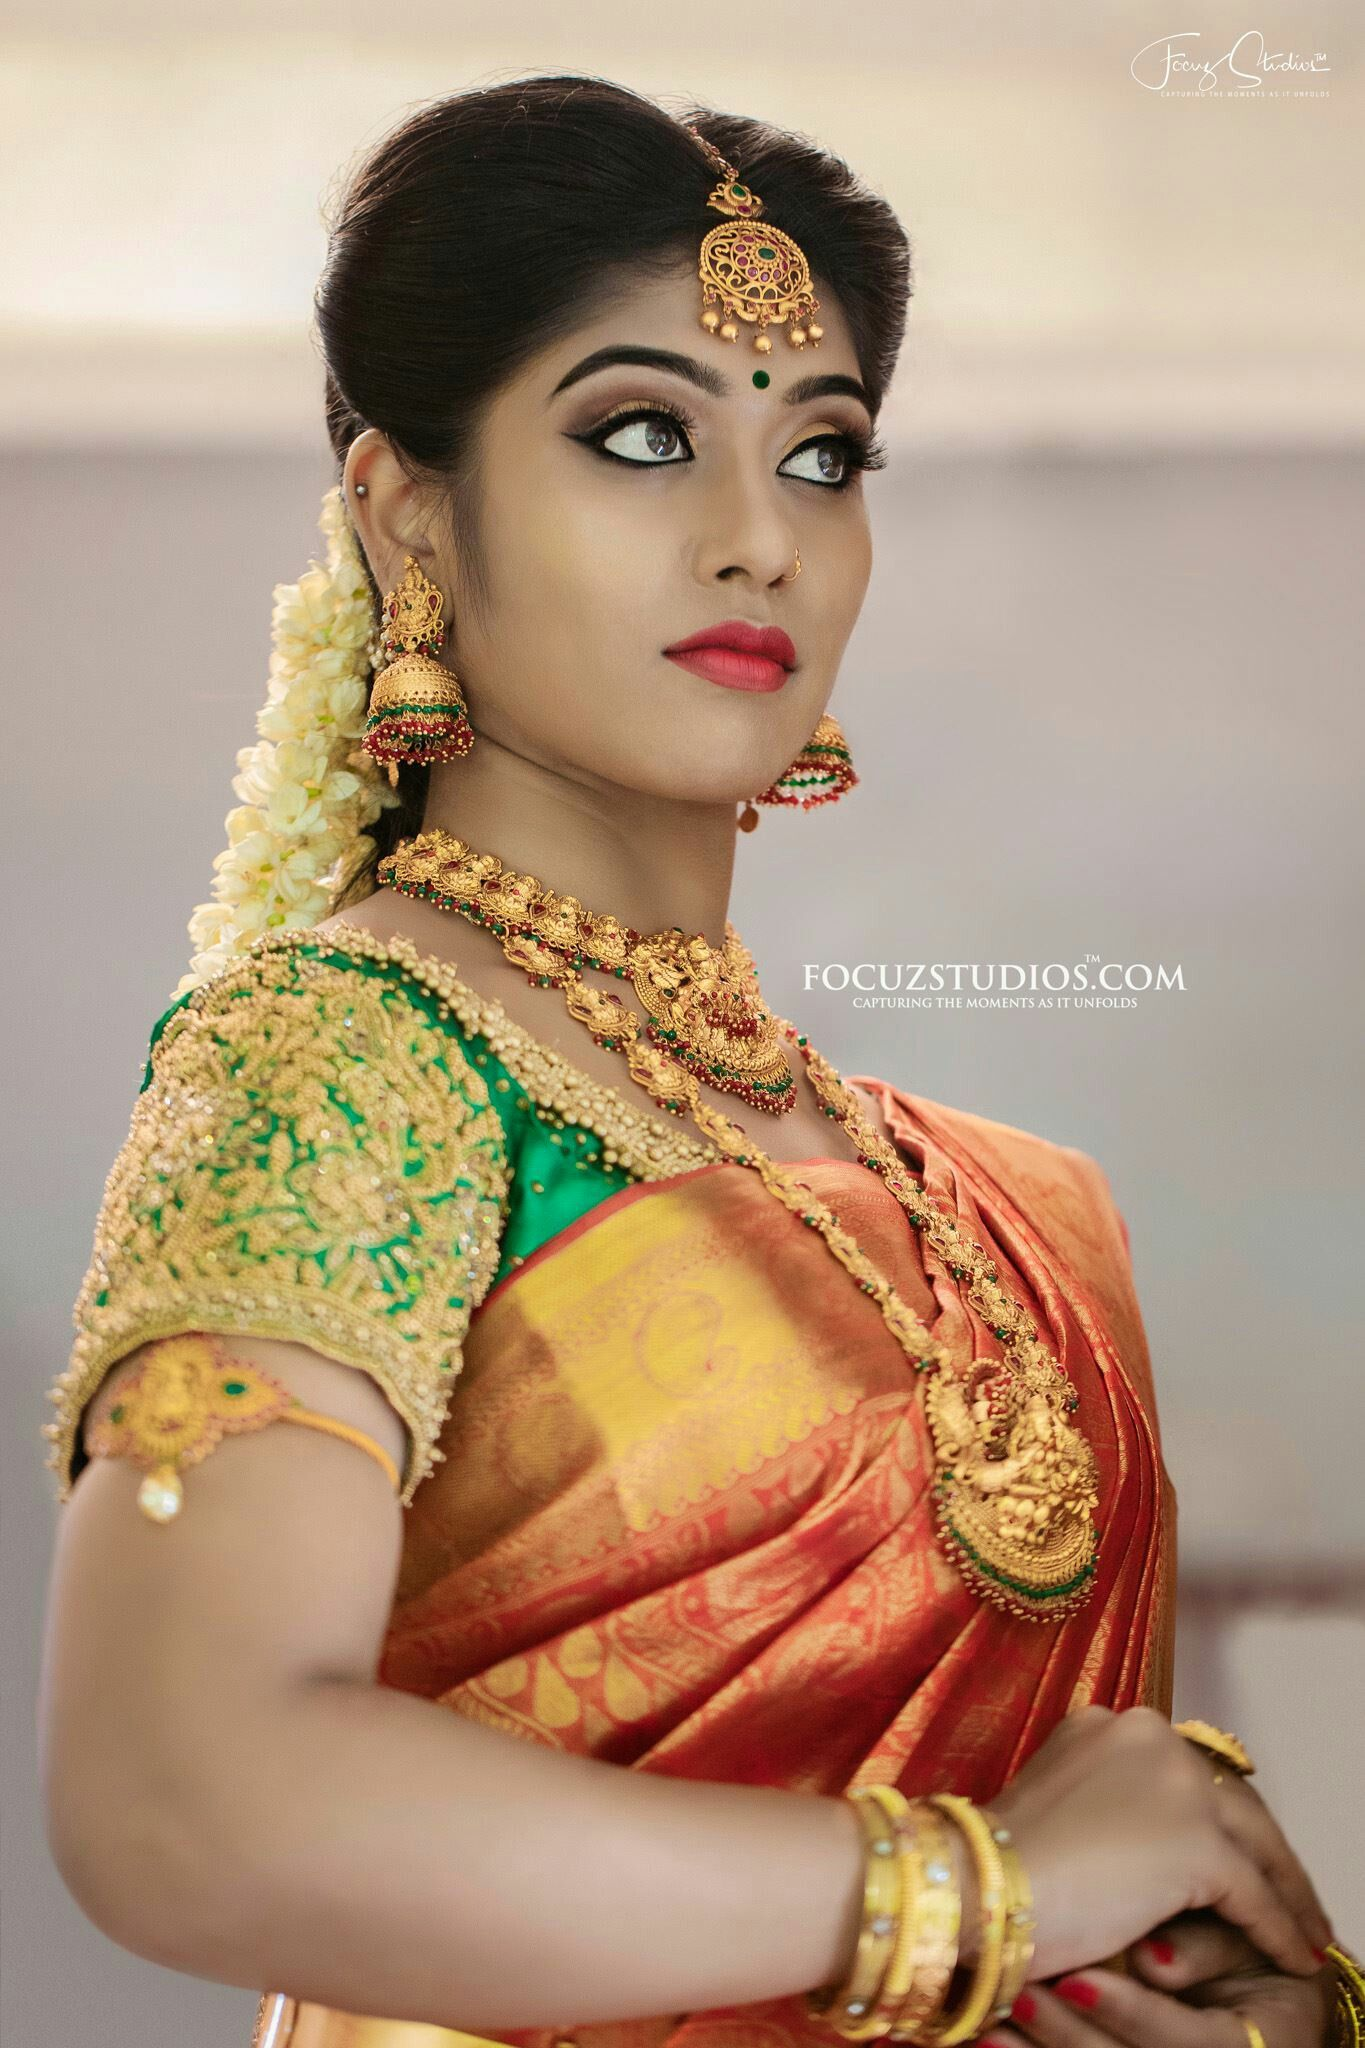 519c3e7e5e68a3 Indian Groom, South Indian Bride, South Indian Weddings, Indian Bridal,  Gold Jewellery